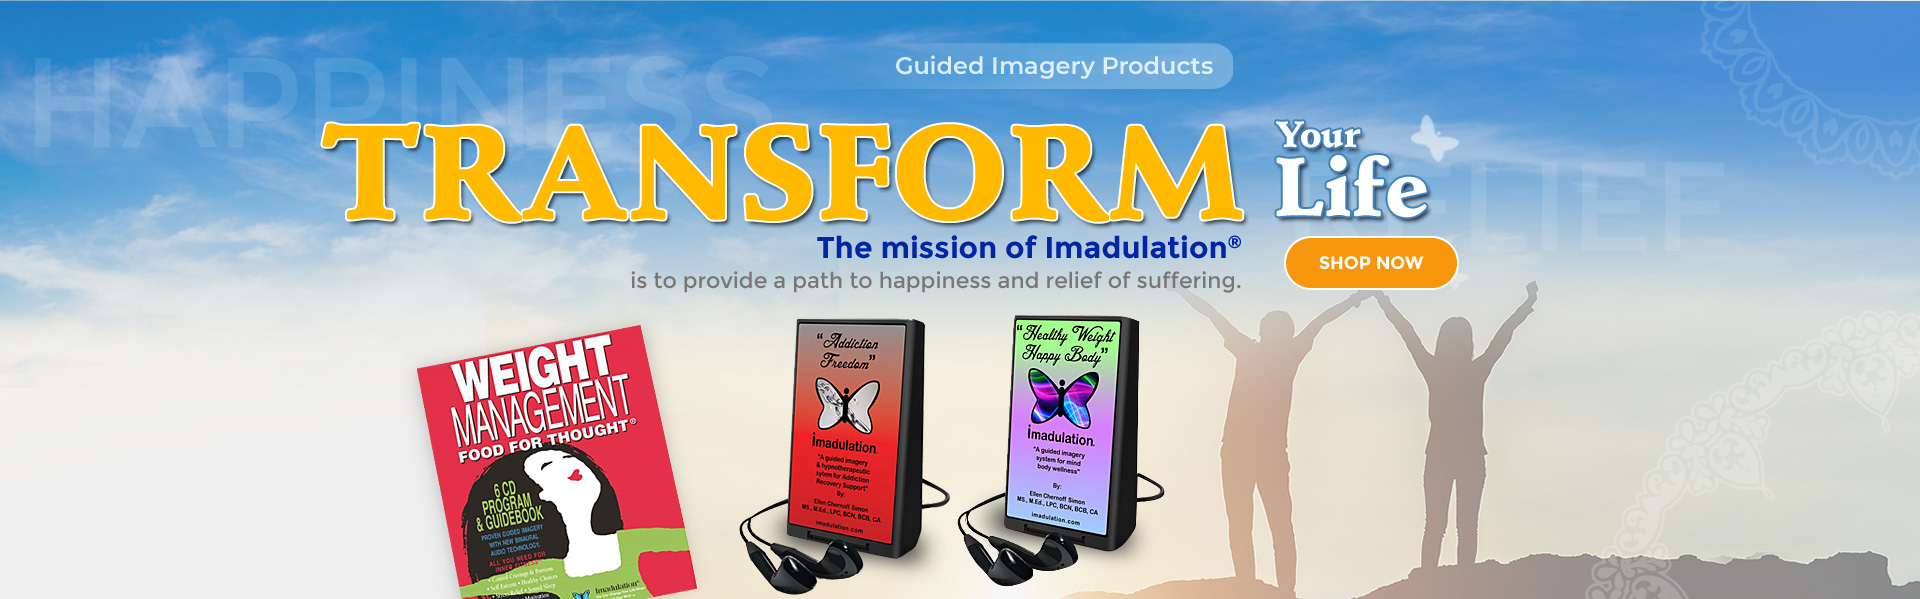 Imadulation Guided Imagery Audio